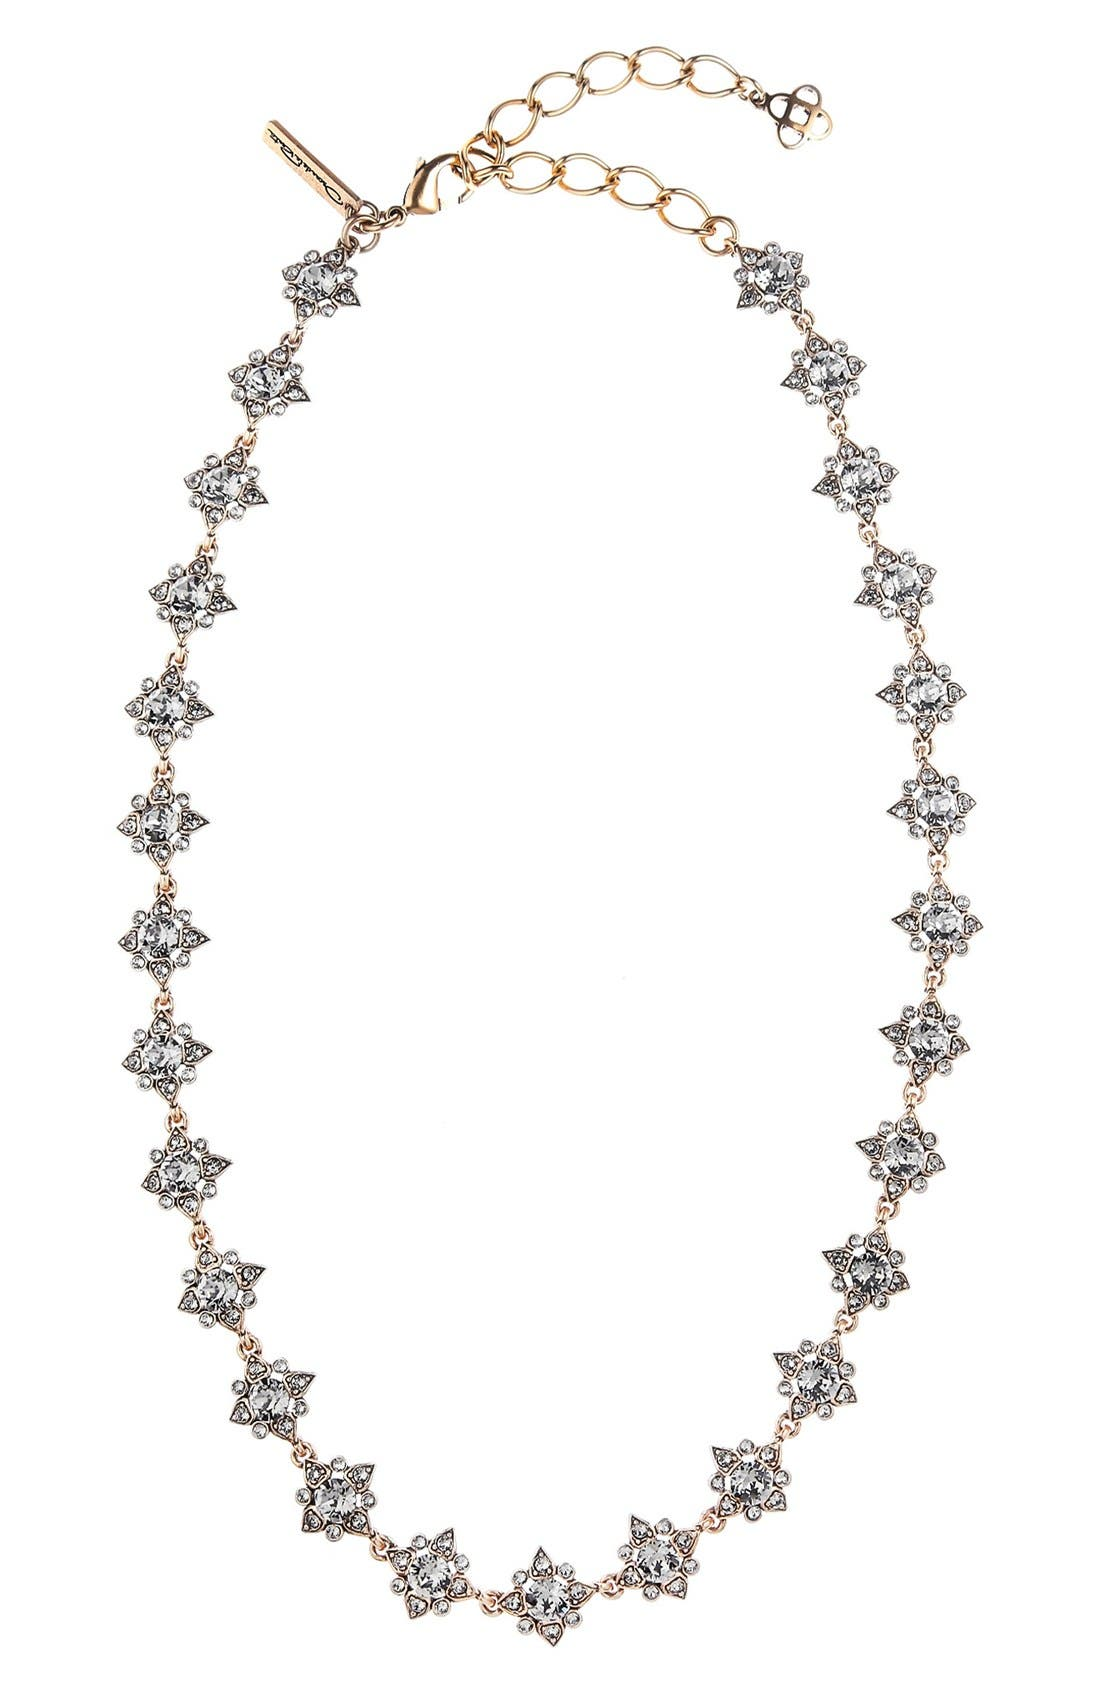 'Delicate Star' Swarovski Crystal Collar Necklace,                         Main,                         color, Black